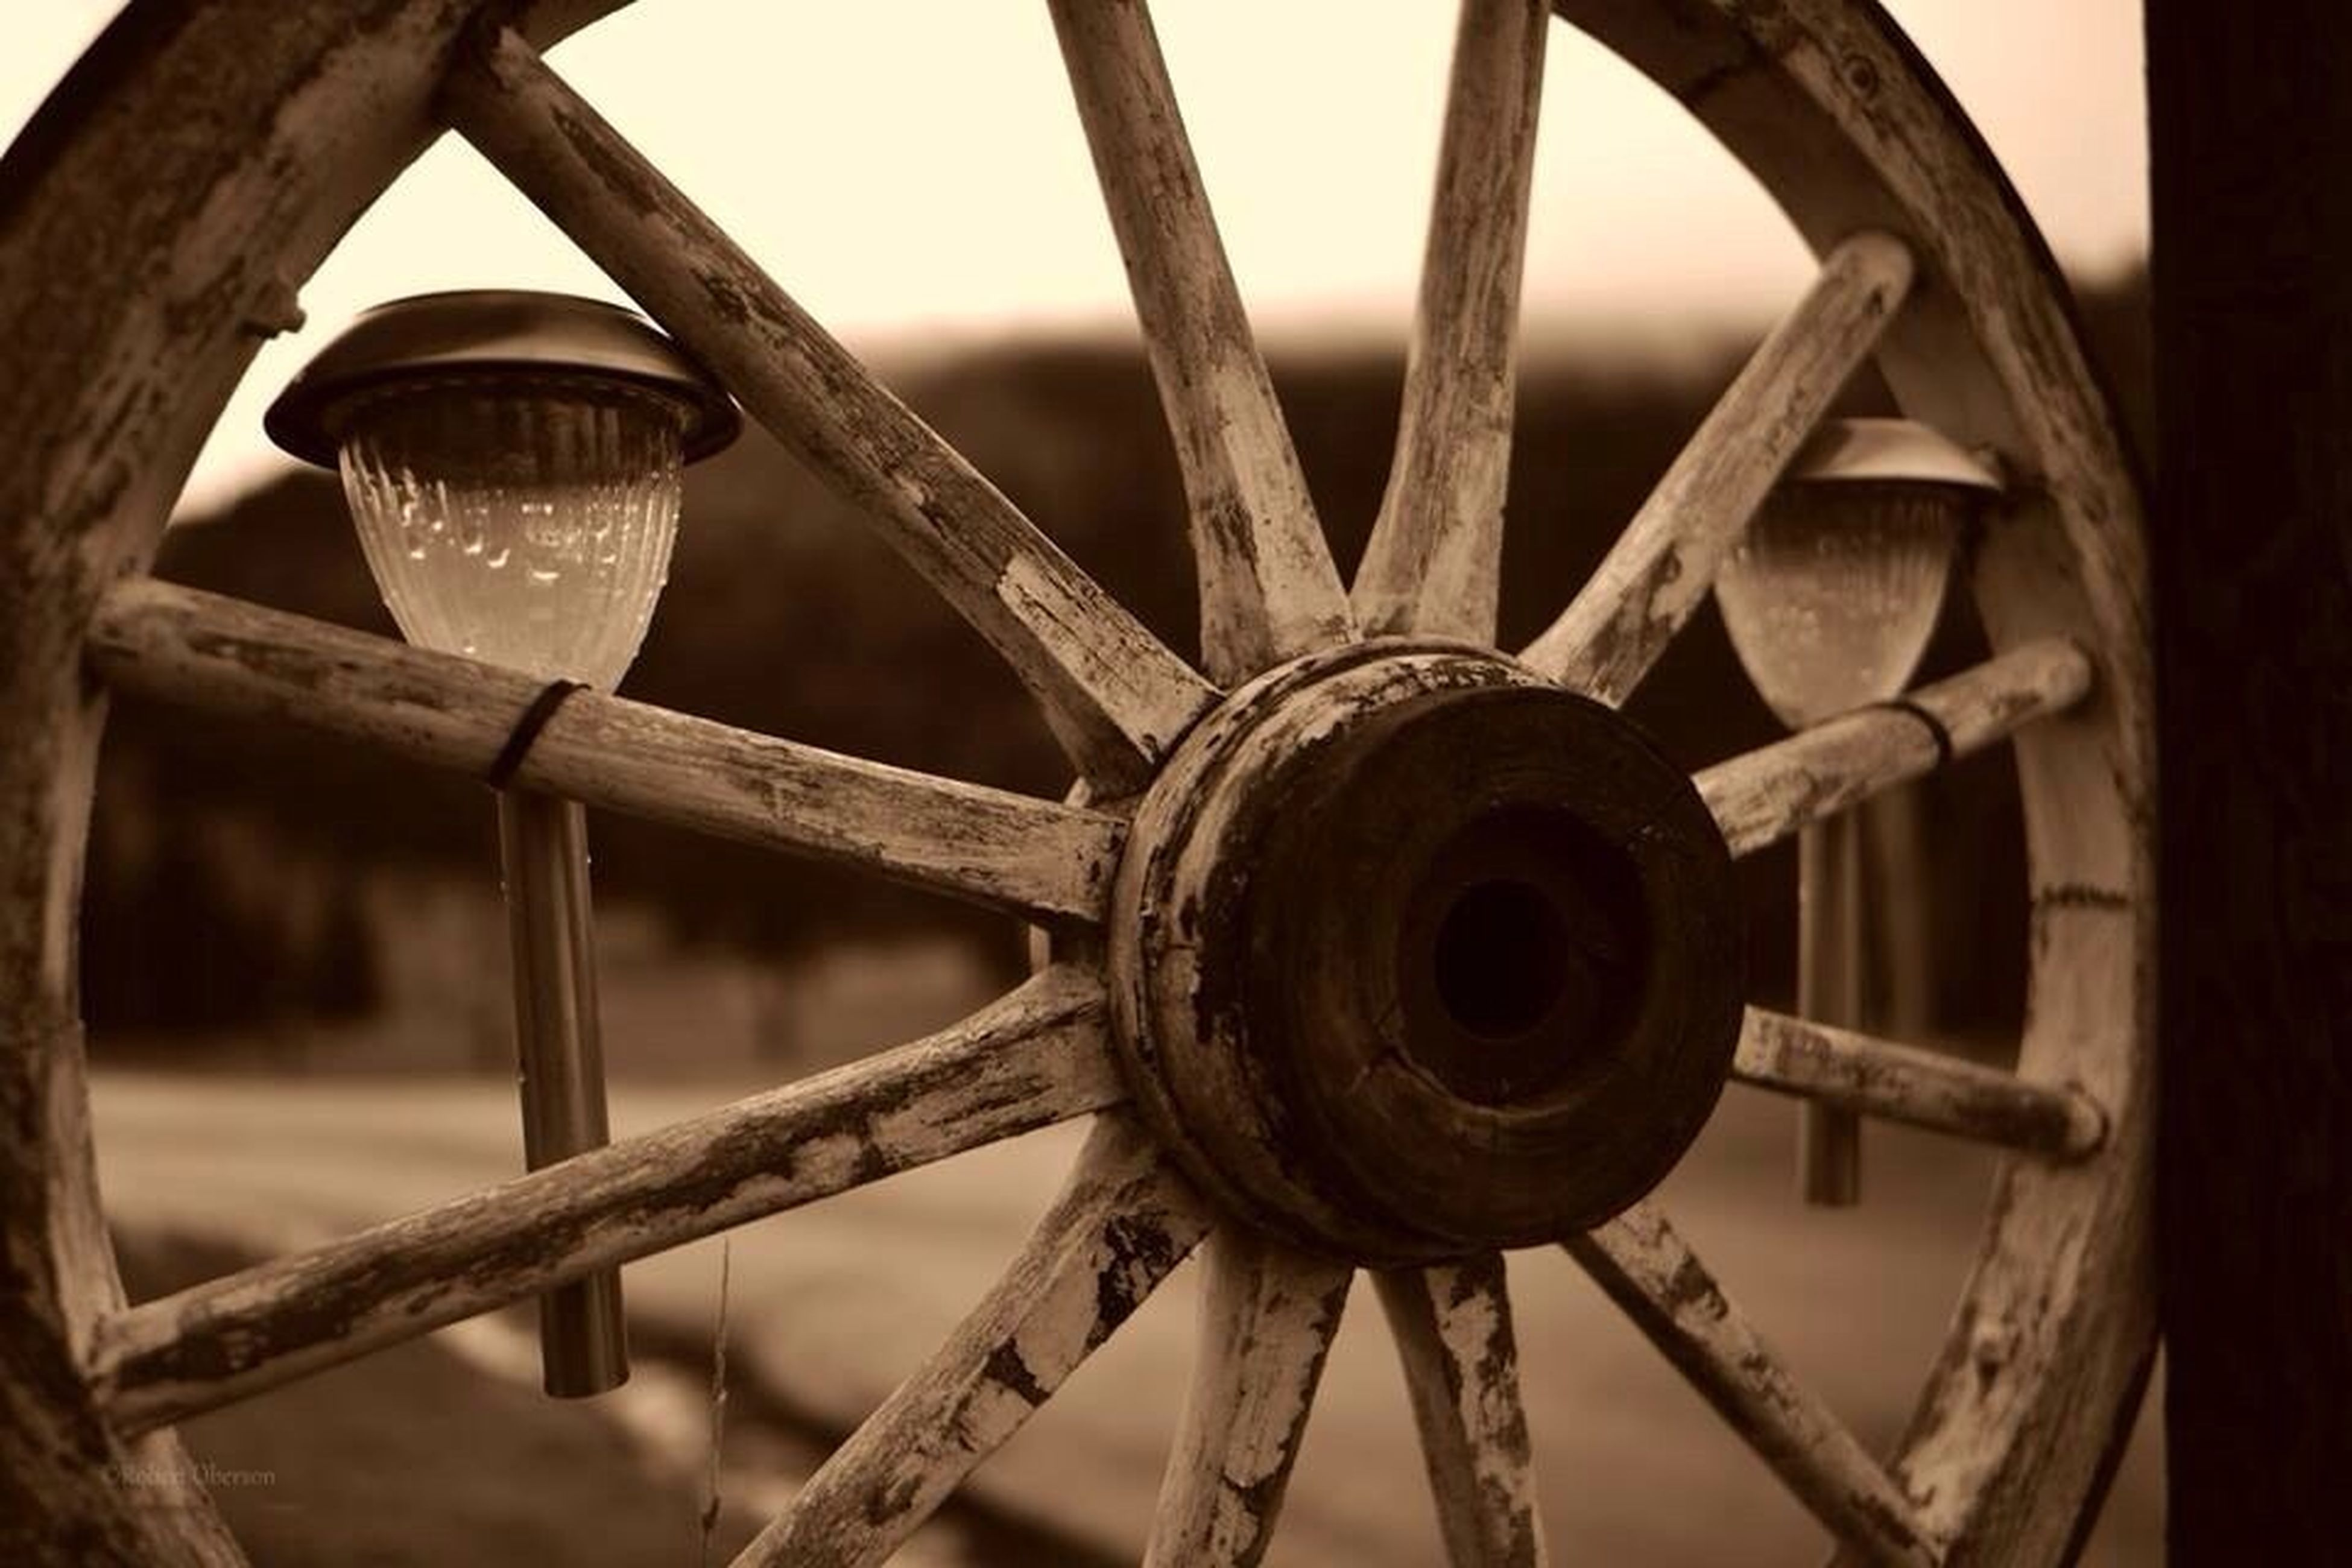 metal, metallic, close-up, rusty, wheel, old, circle, pattern, abandoned, protection, low angle view, focus on foreground, no people, day, damaged, sky, outdoors, iron - metal, safety